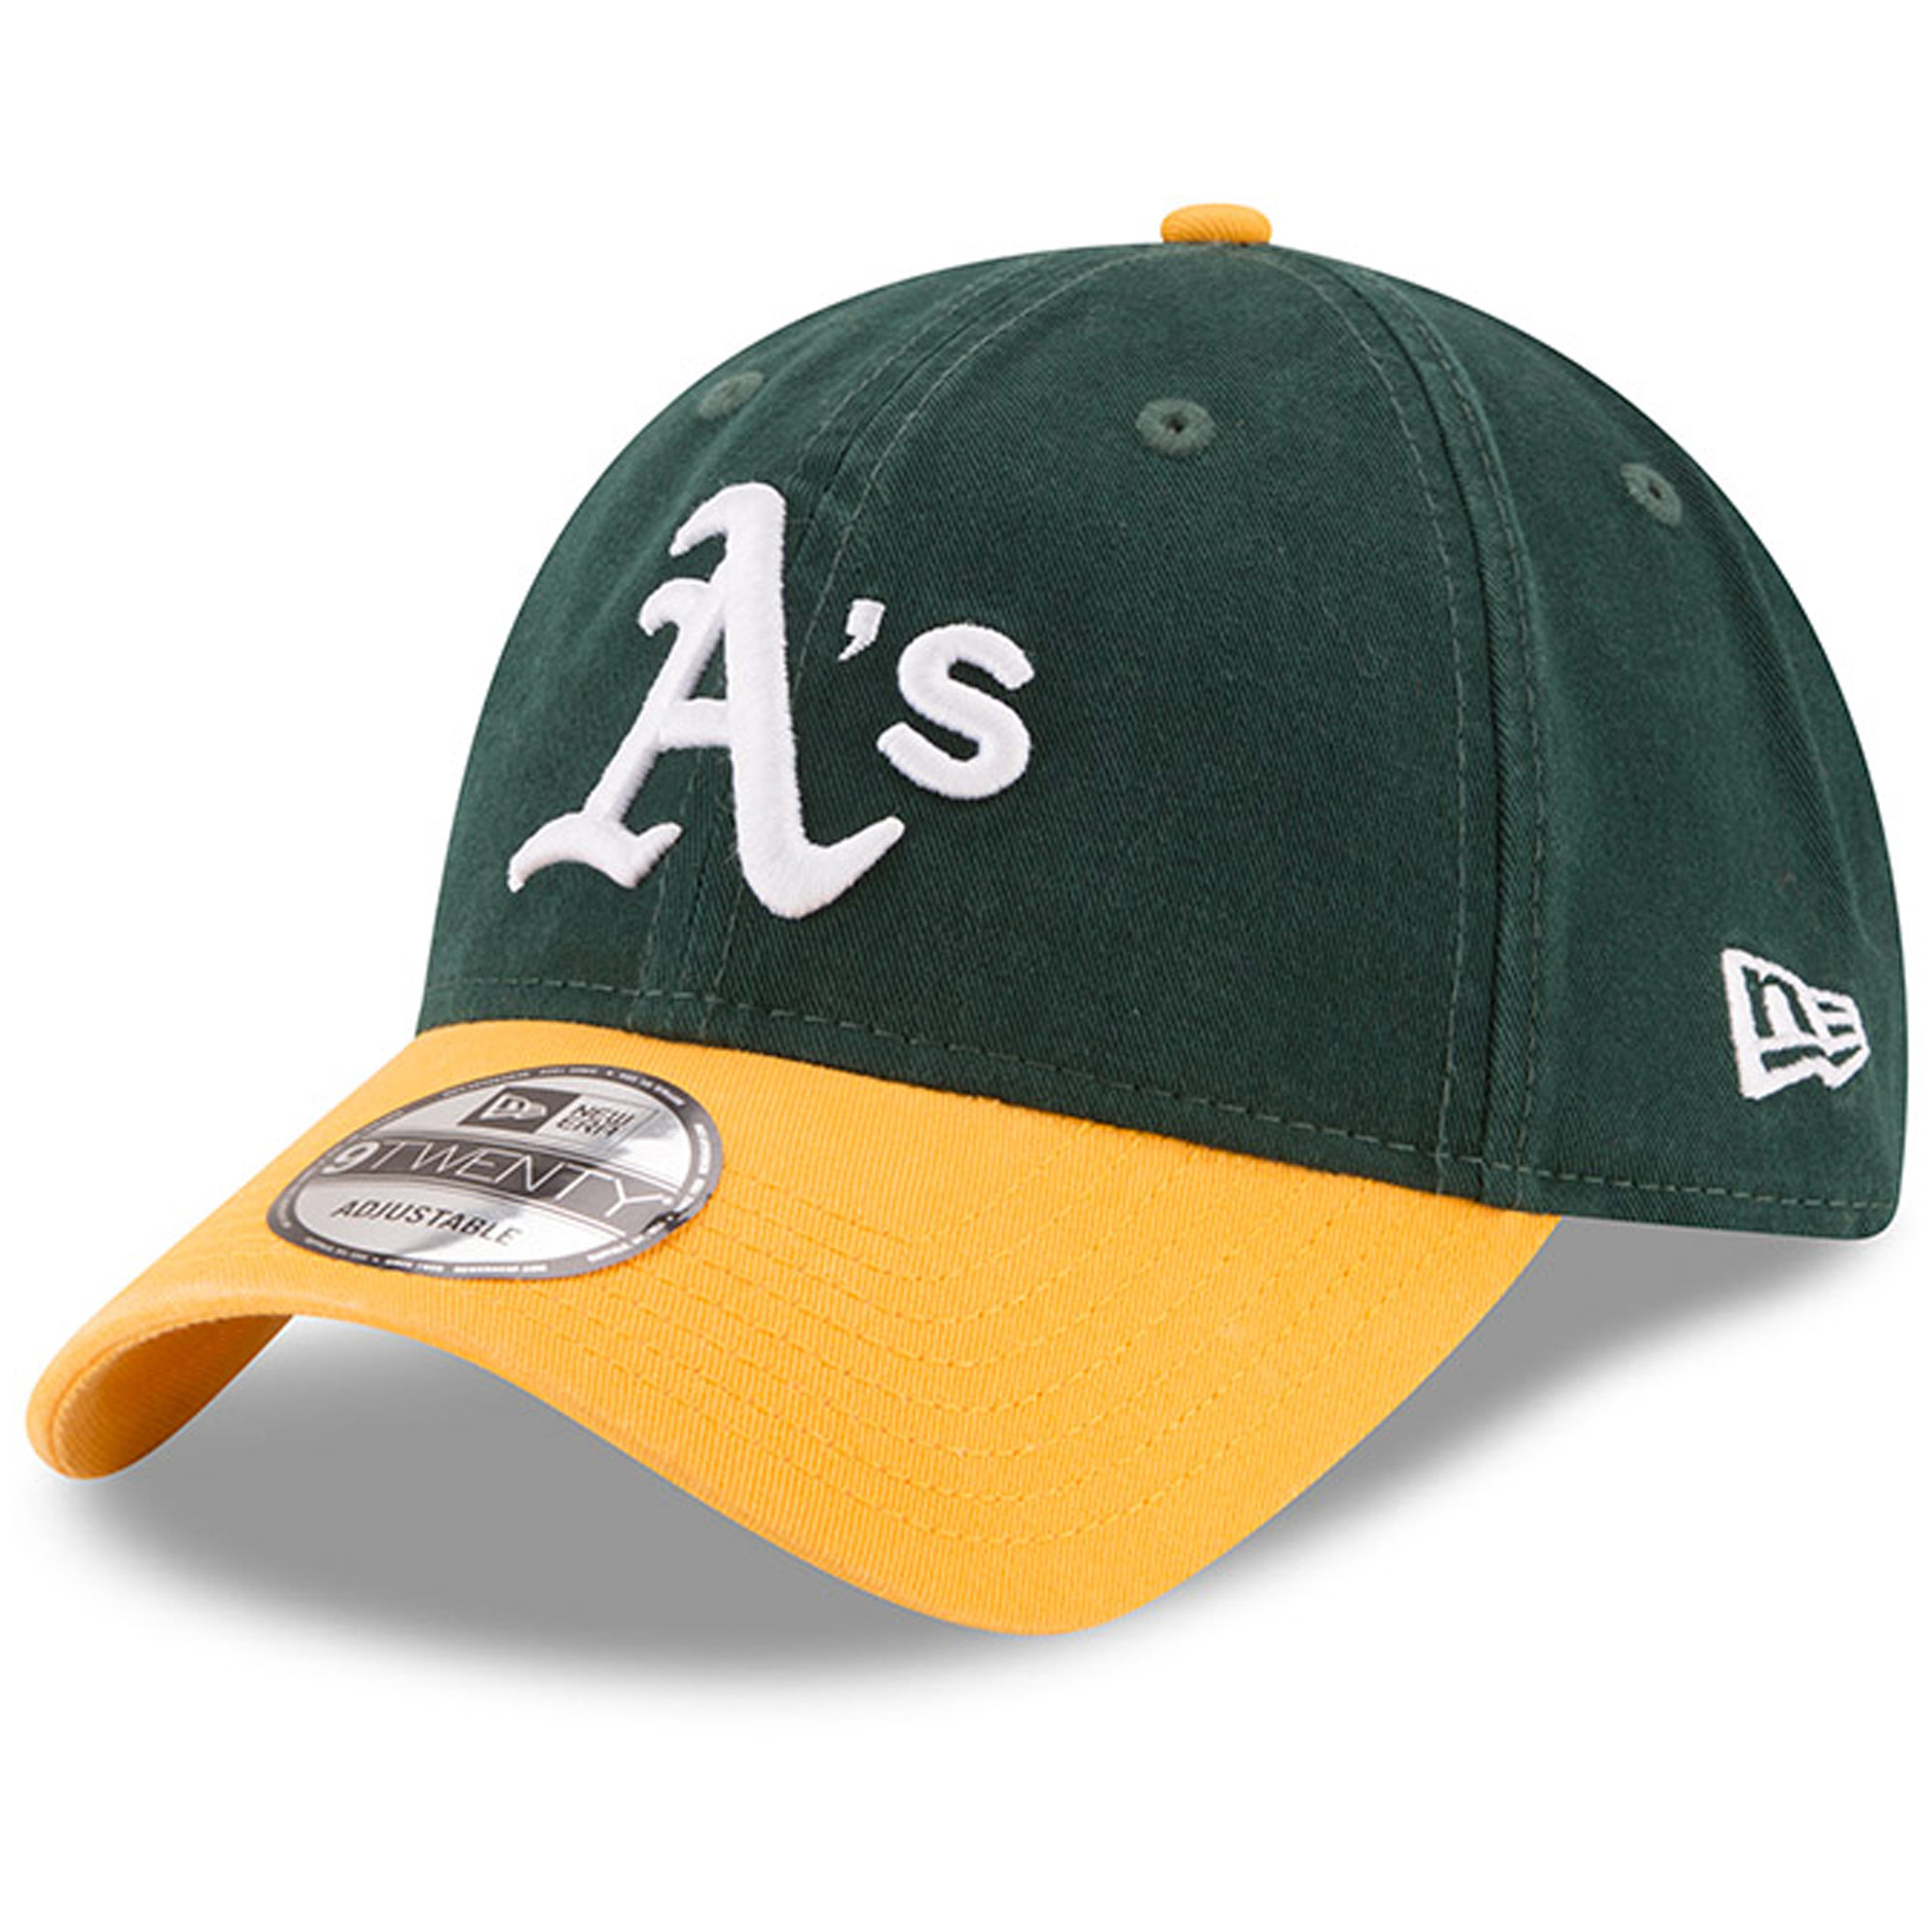 Oakland Athletics New Era Home Replica Core Classic 9TWENTY Adjustable Hat - Green/Gold - OSFA